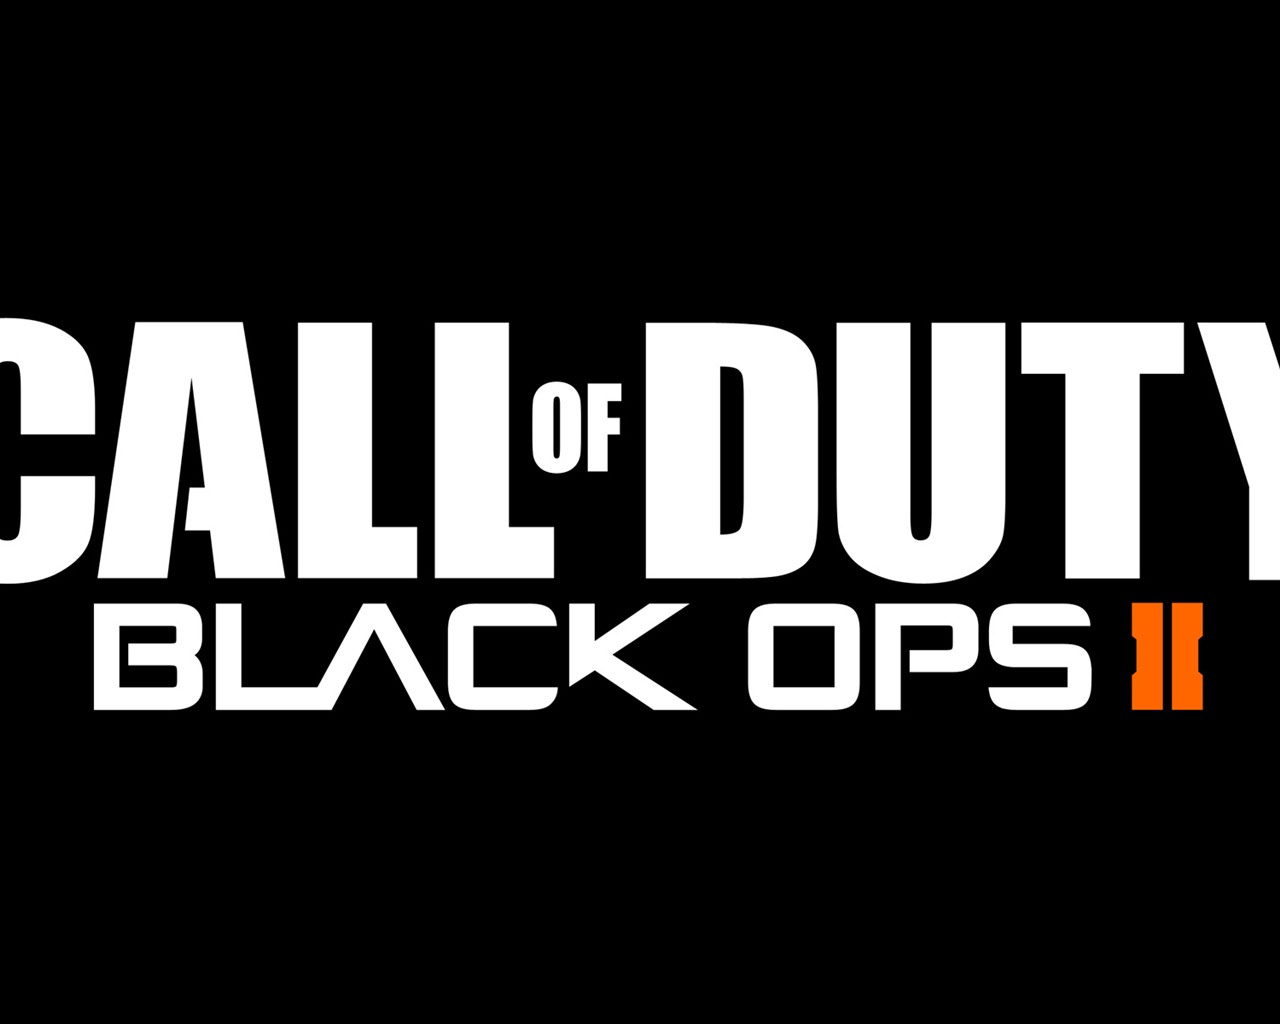 Call Of Duty Black Ops 2 Hd Wallpapers 12 1280x1024 Wallpaper